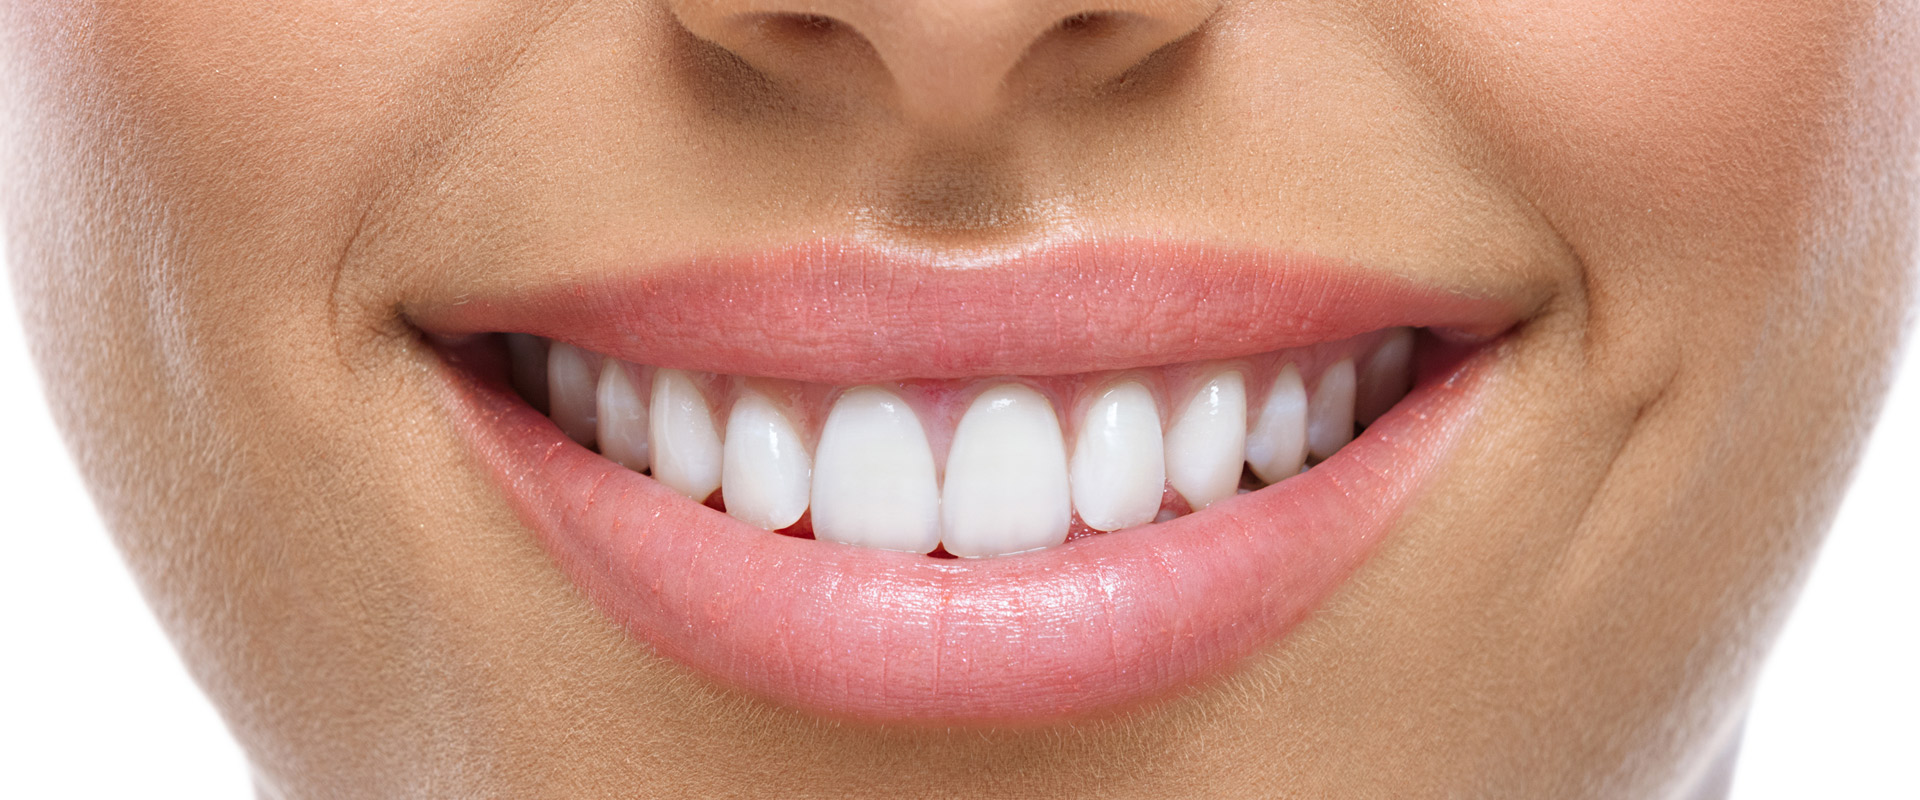 Tooth straightening at High Street Dental Care